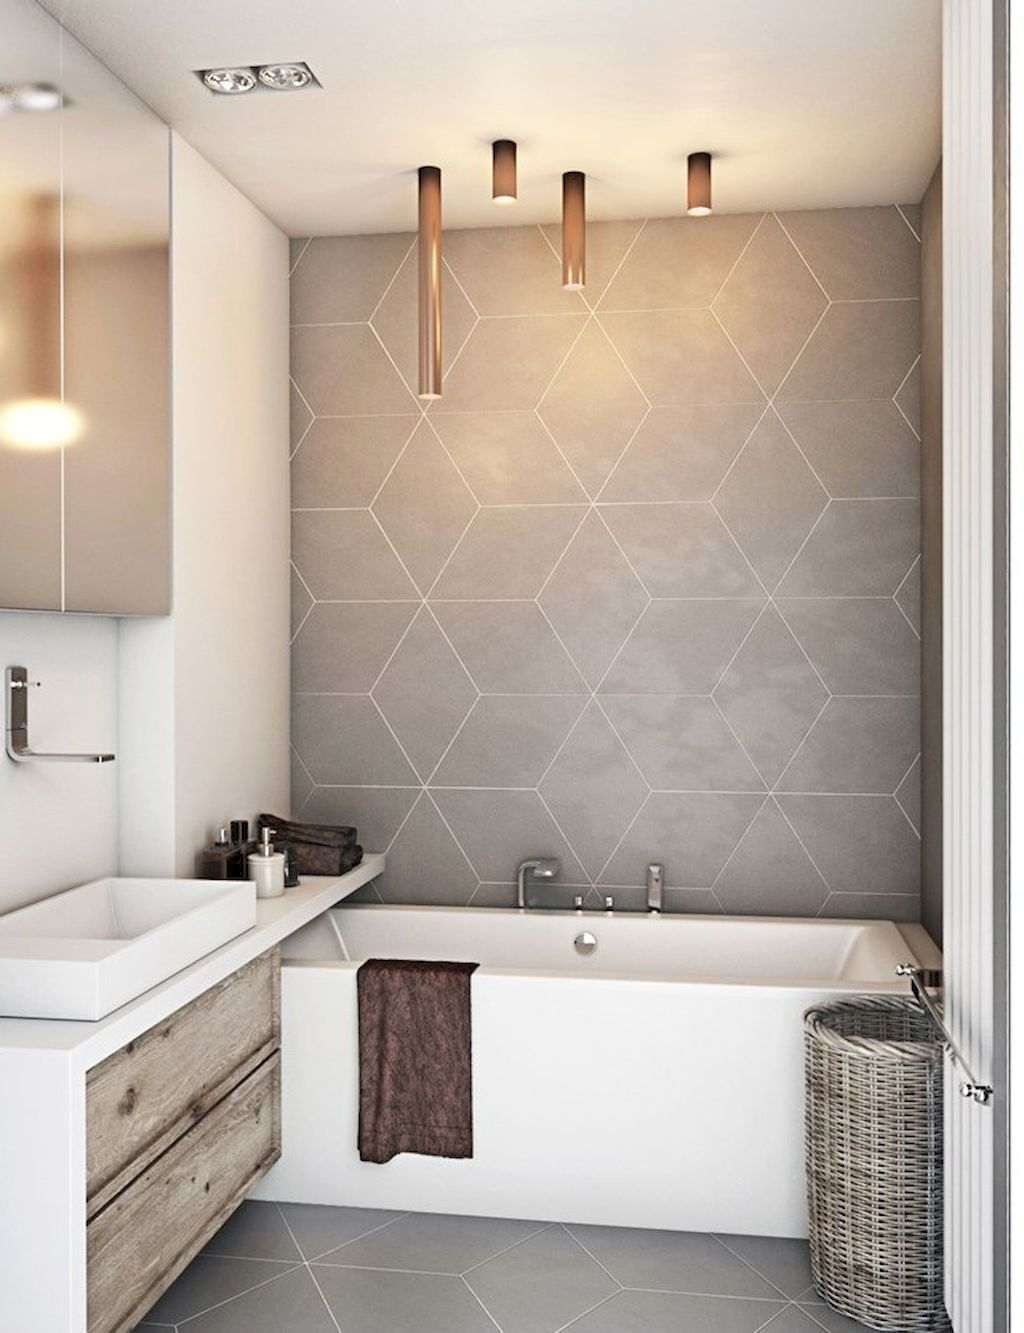 55 Inspiration Bathroom Tile Pattern Decorating Ideas